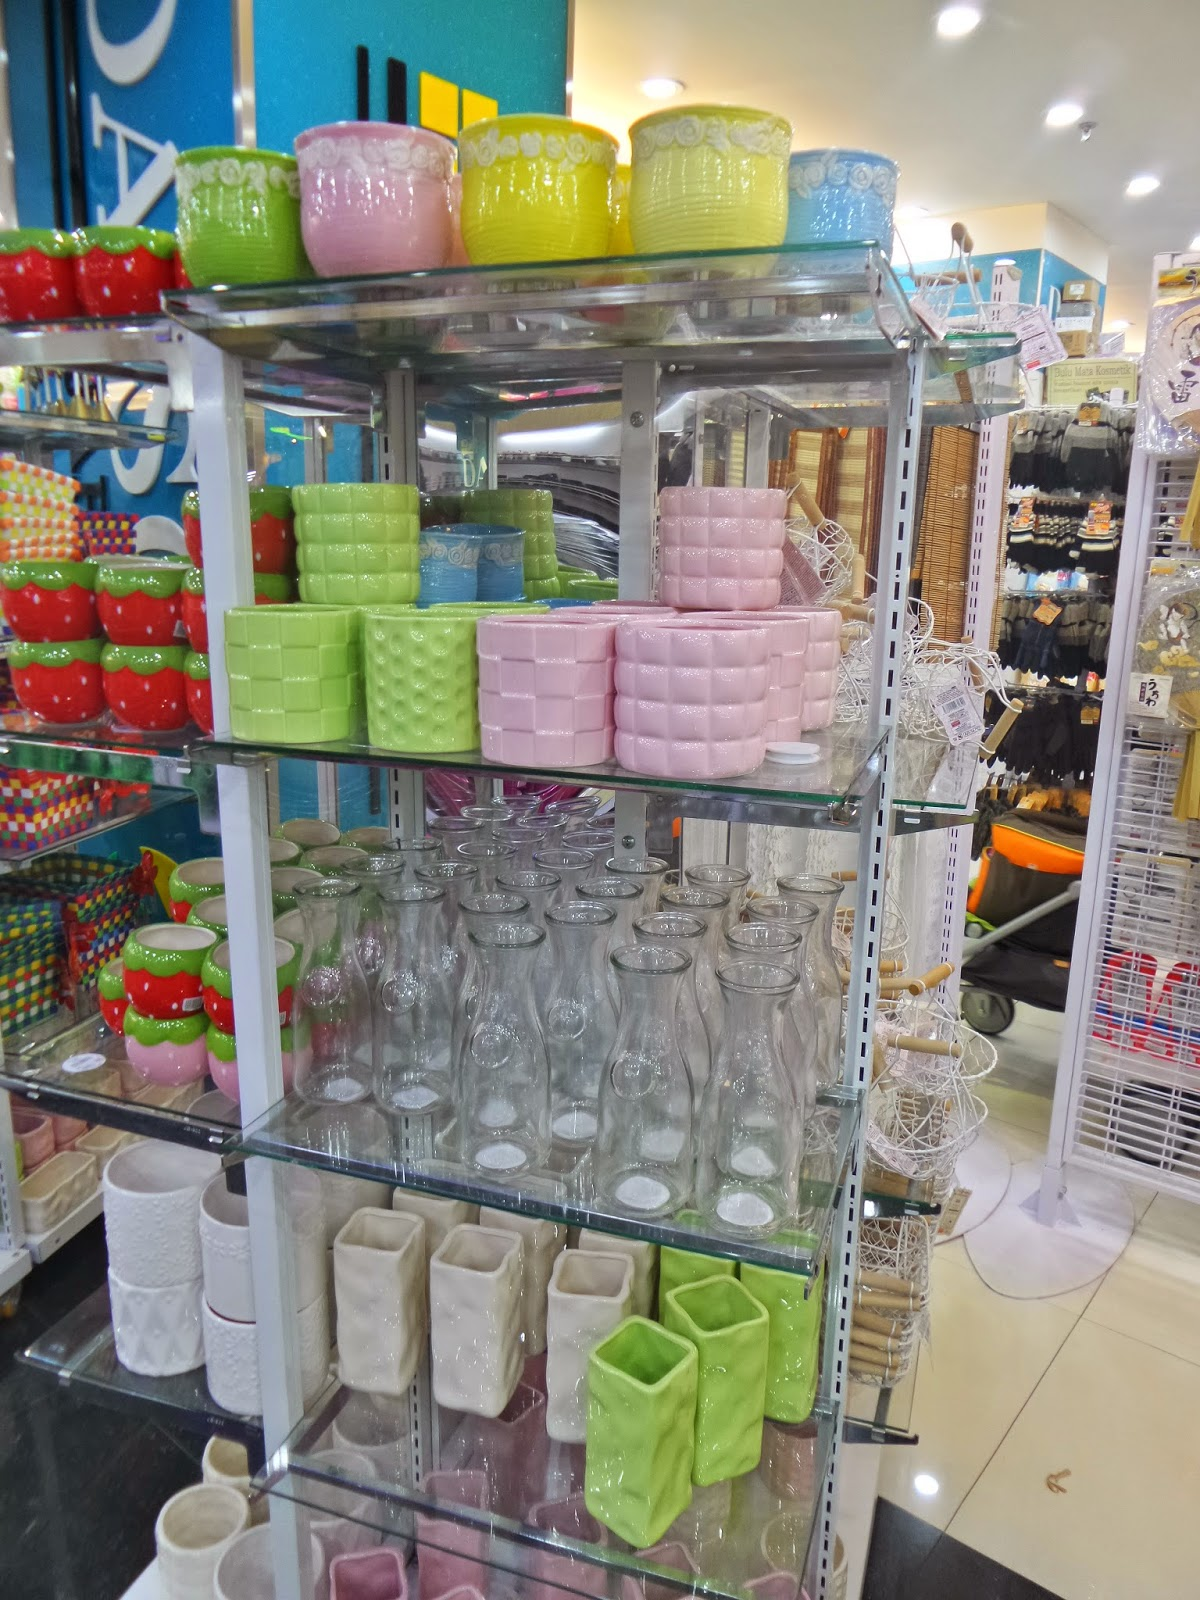 Gantungan Alat Masak Review Daiso Japan Store All For Idr25 000 Roswitha